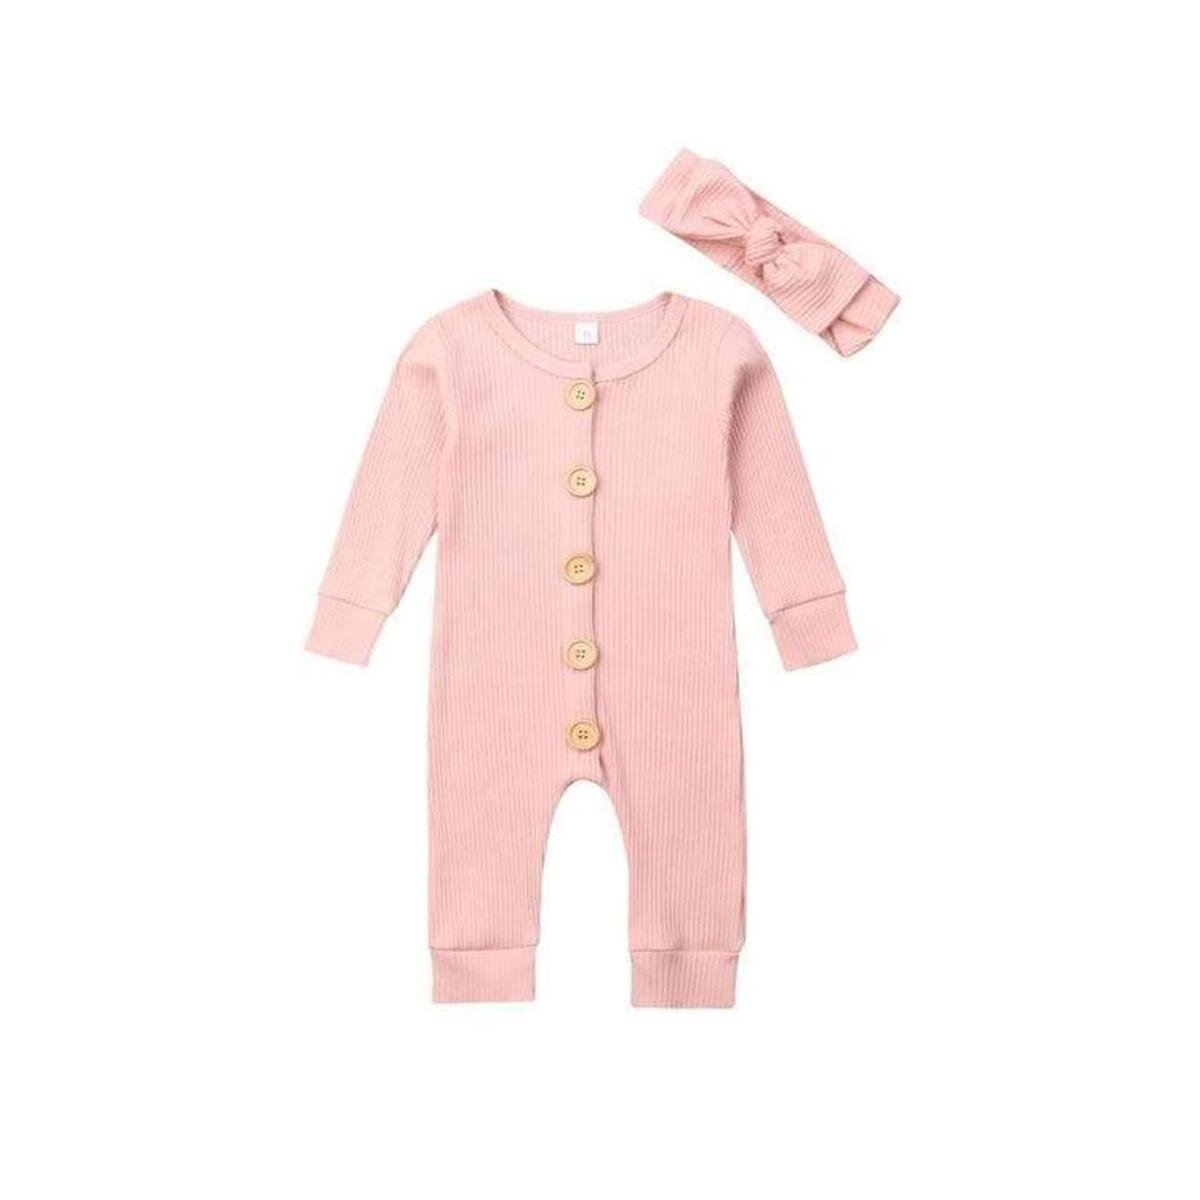 Baby Girls Romper Knitted Ruffle Long Sleeve Jumpsuit Casual Clothing